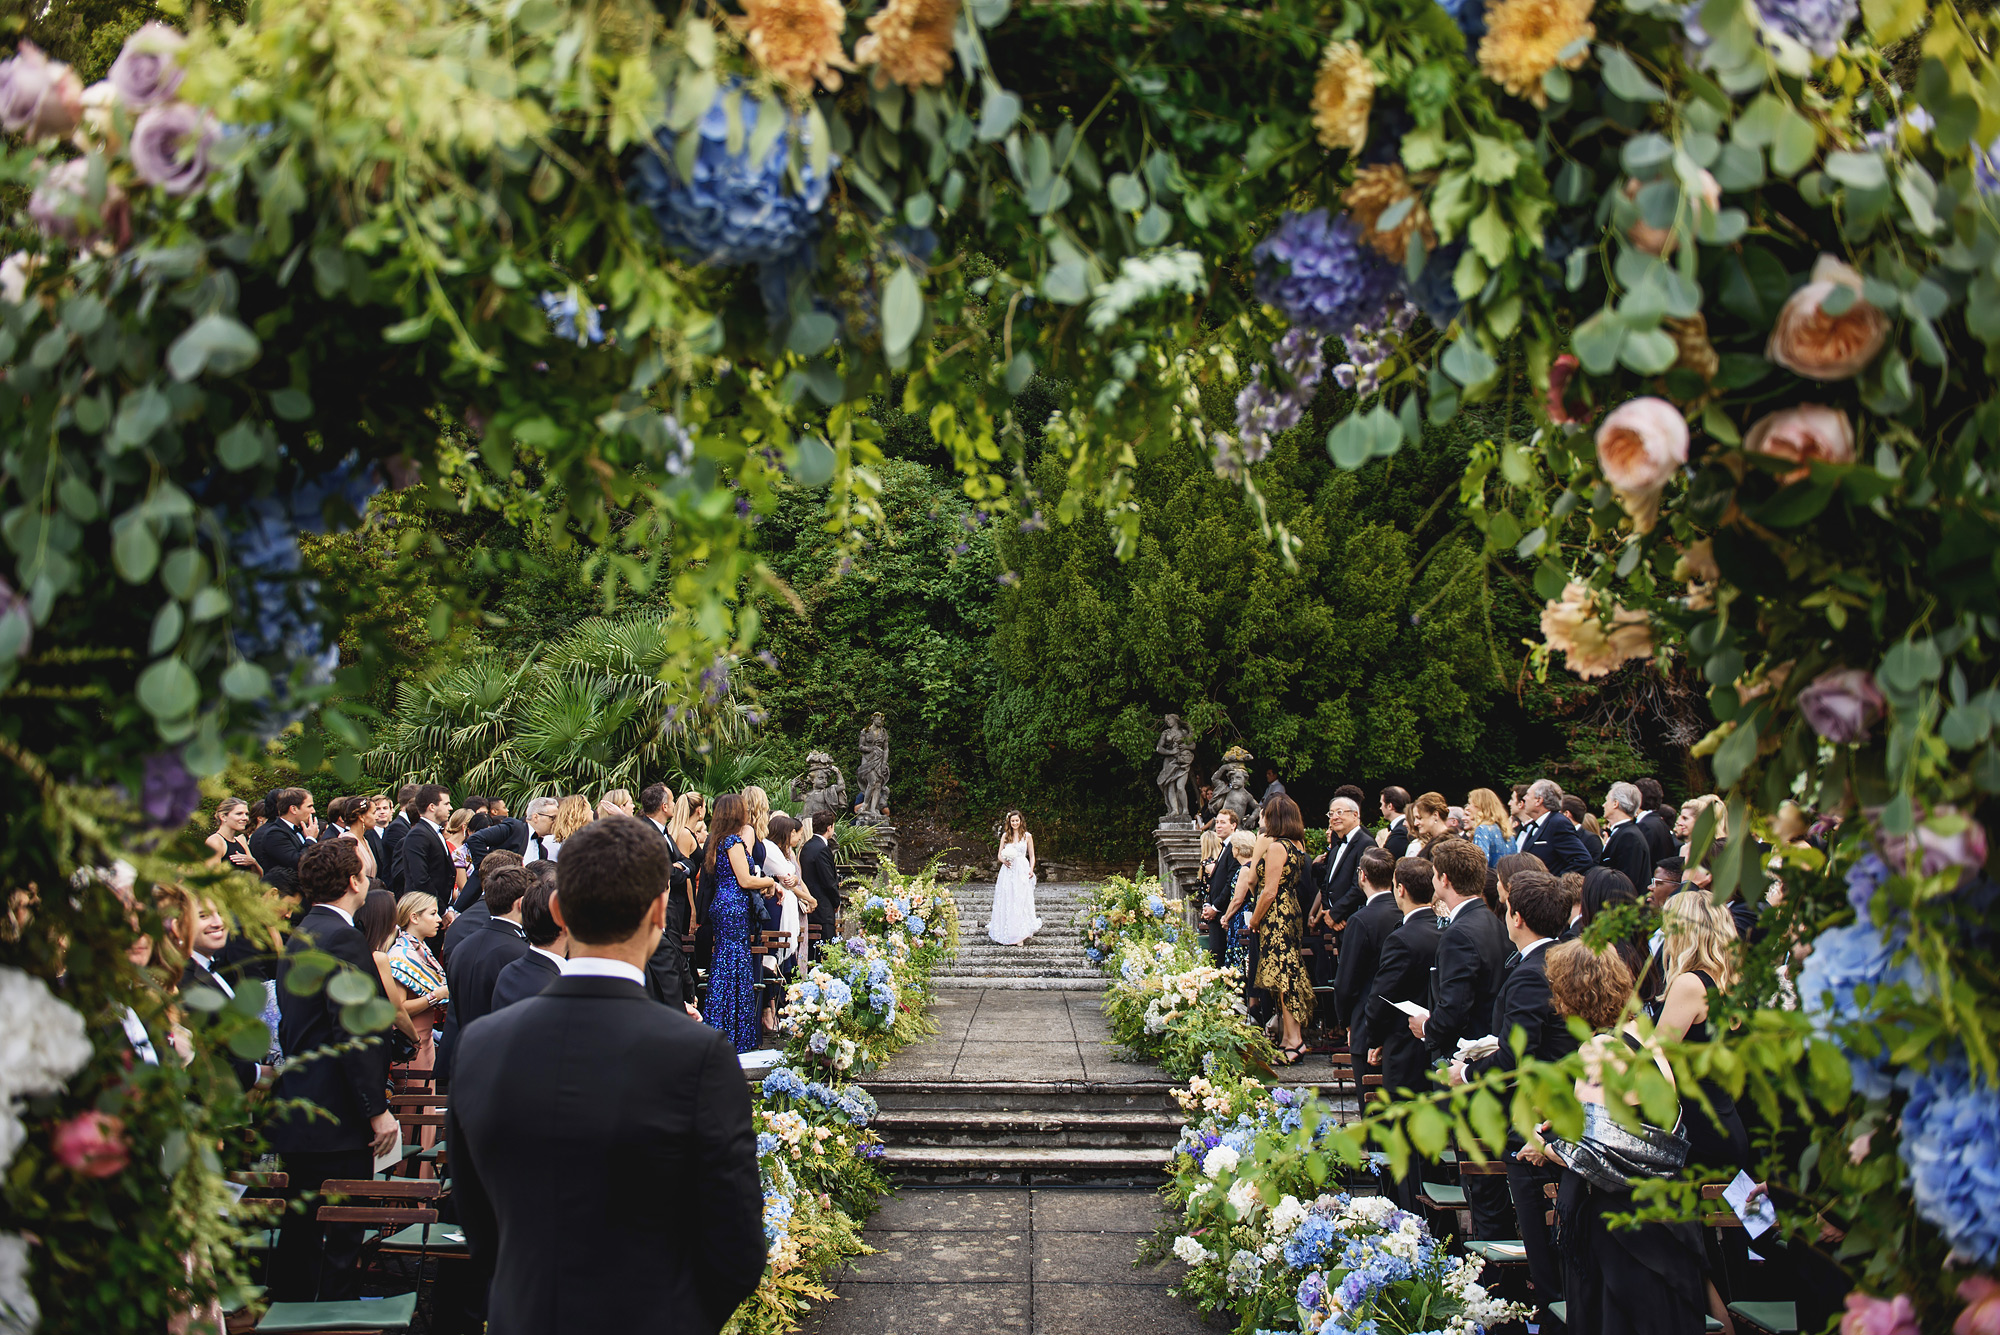 Bride comes down elaborate floral lined aisle - photo by Ross Harvey